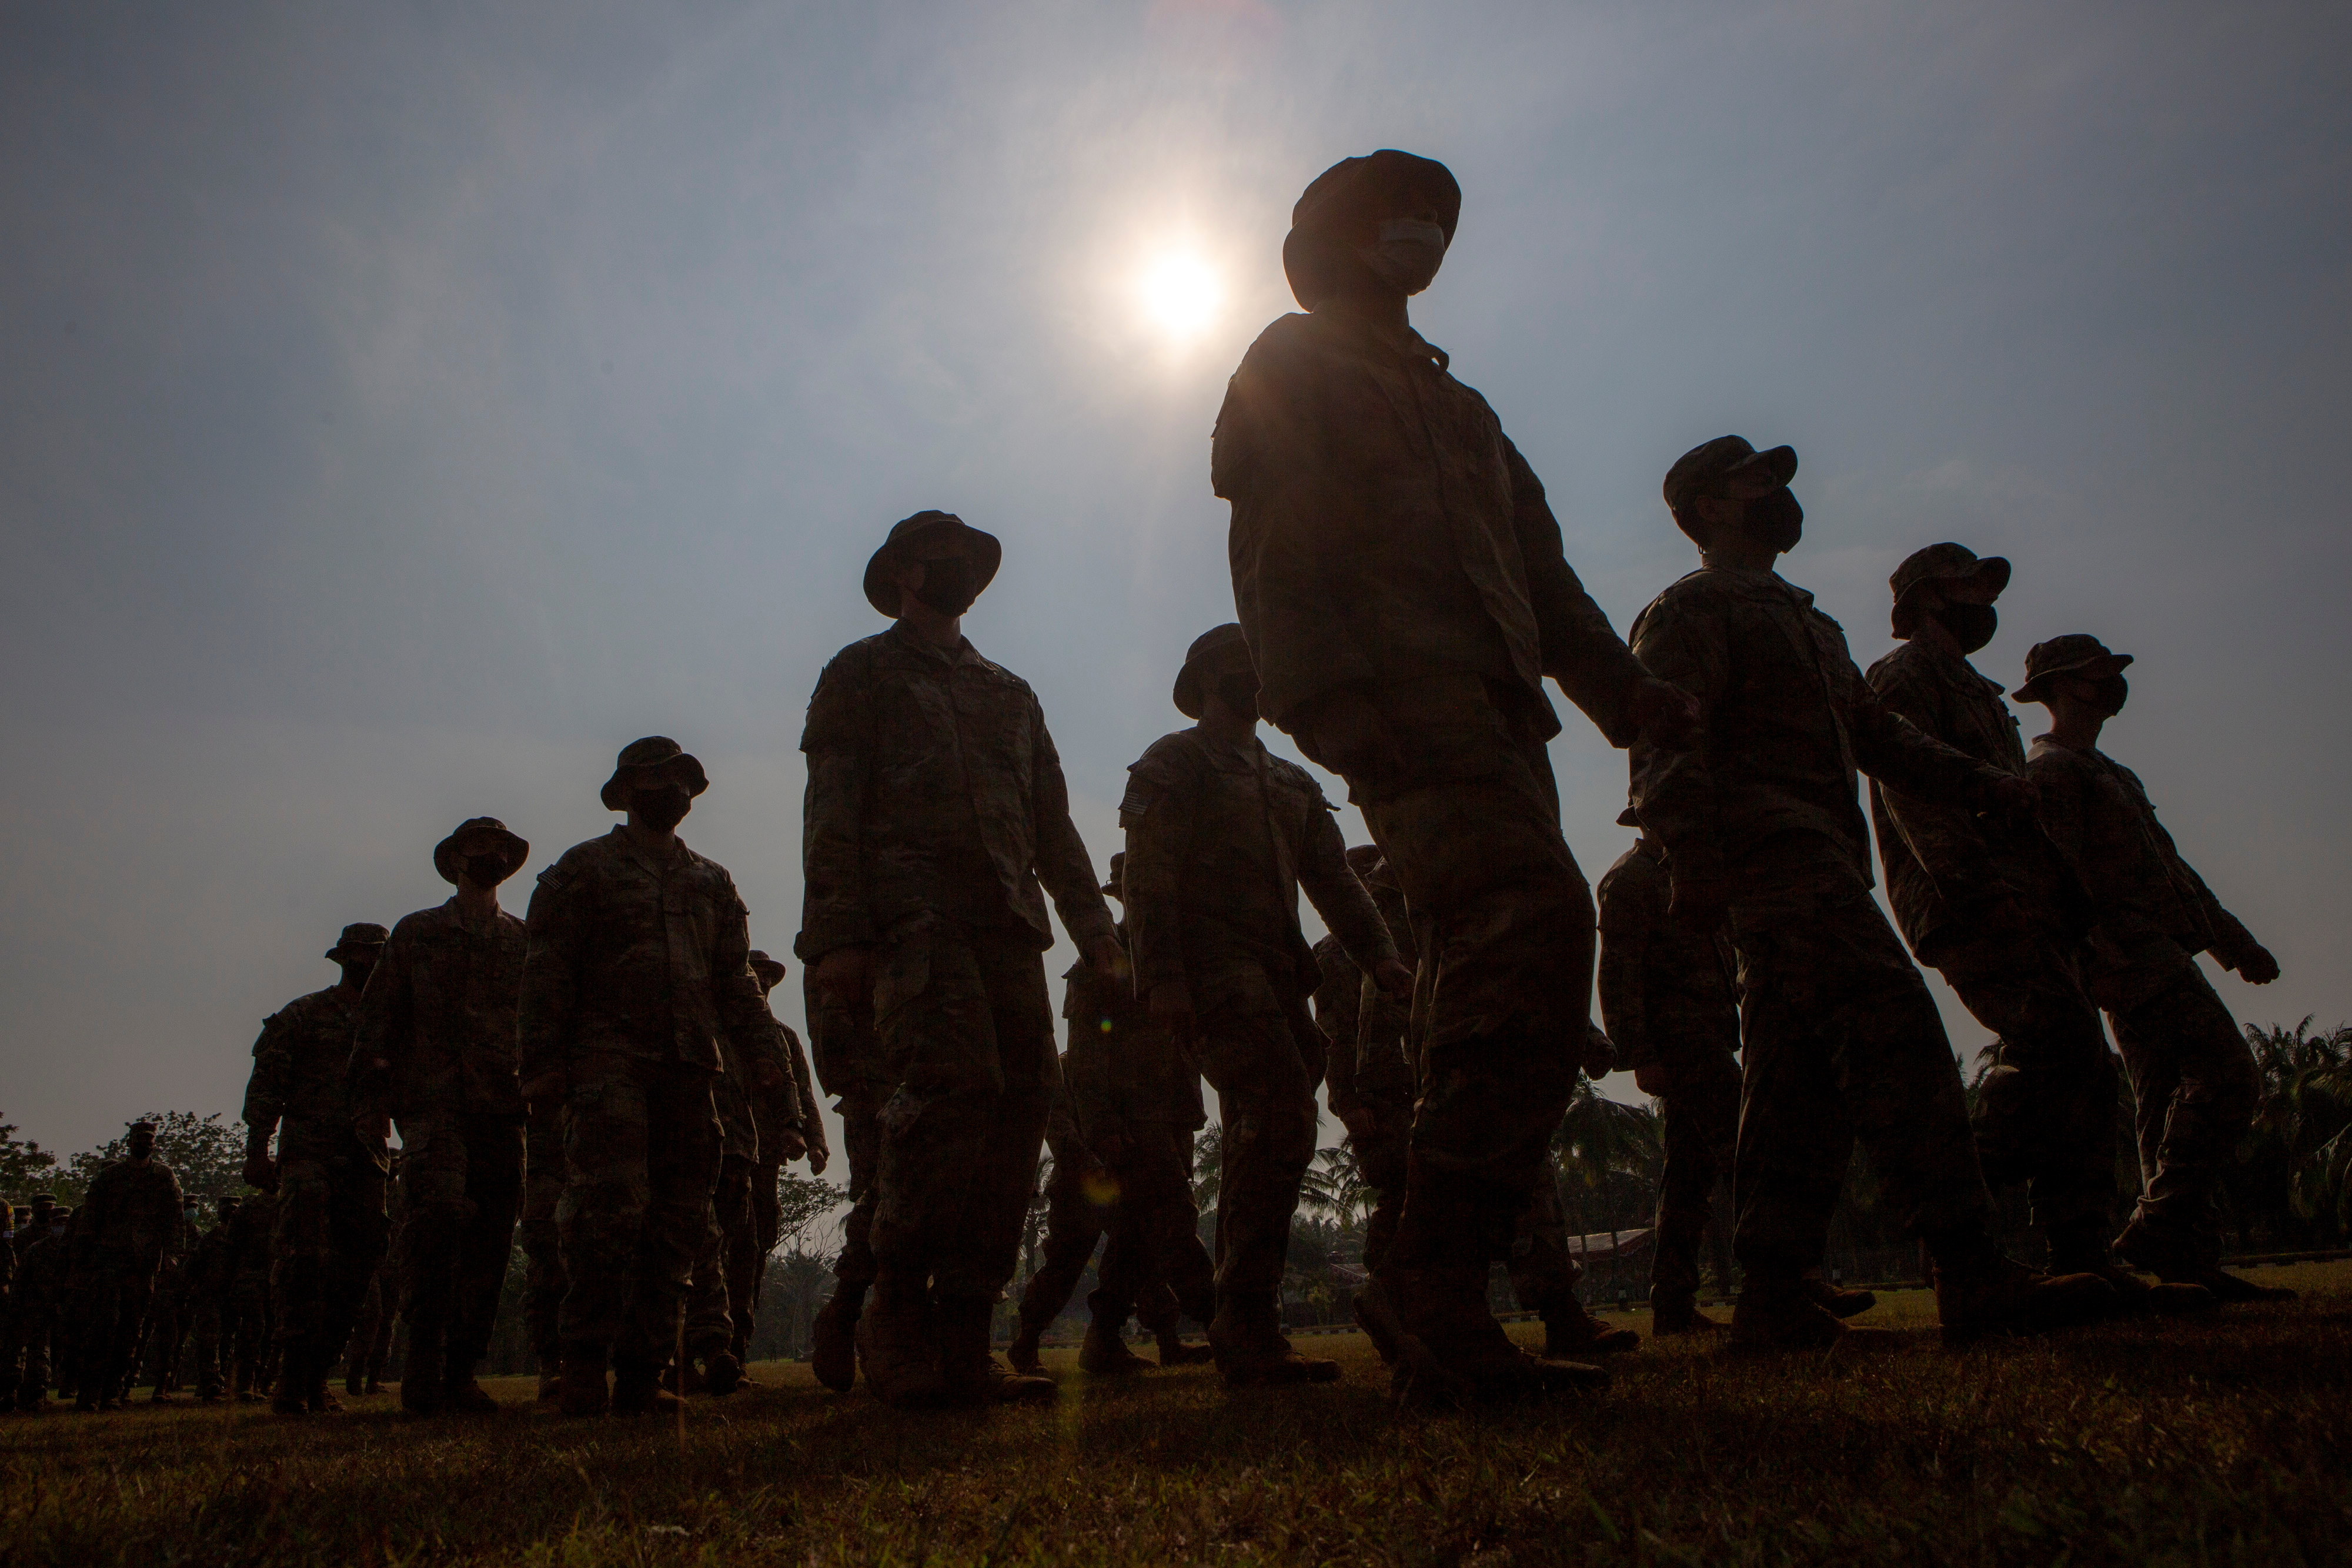 Silhouette of U.S. Army soldiers taking part in the opening of the Garuda Shield Joint Exercise 2021 at the Indonesian Army Combat Training Center in Baturaja, South Sumatra province, Indonesia August 4, 2021. Antara Foto/Nova Wahyudi/via Reuters.